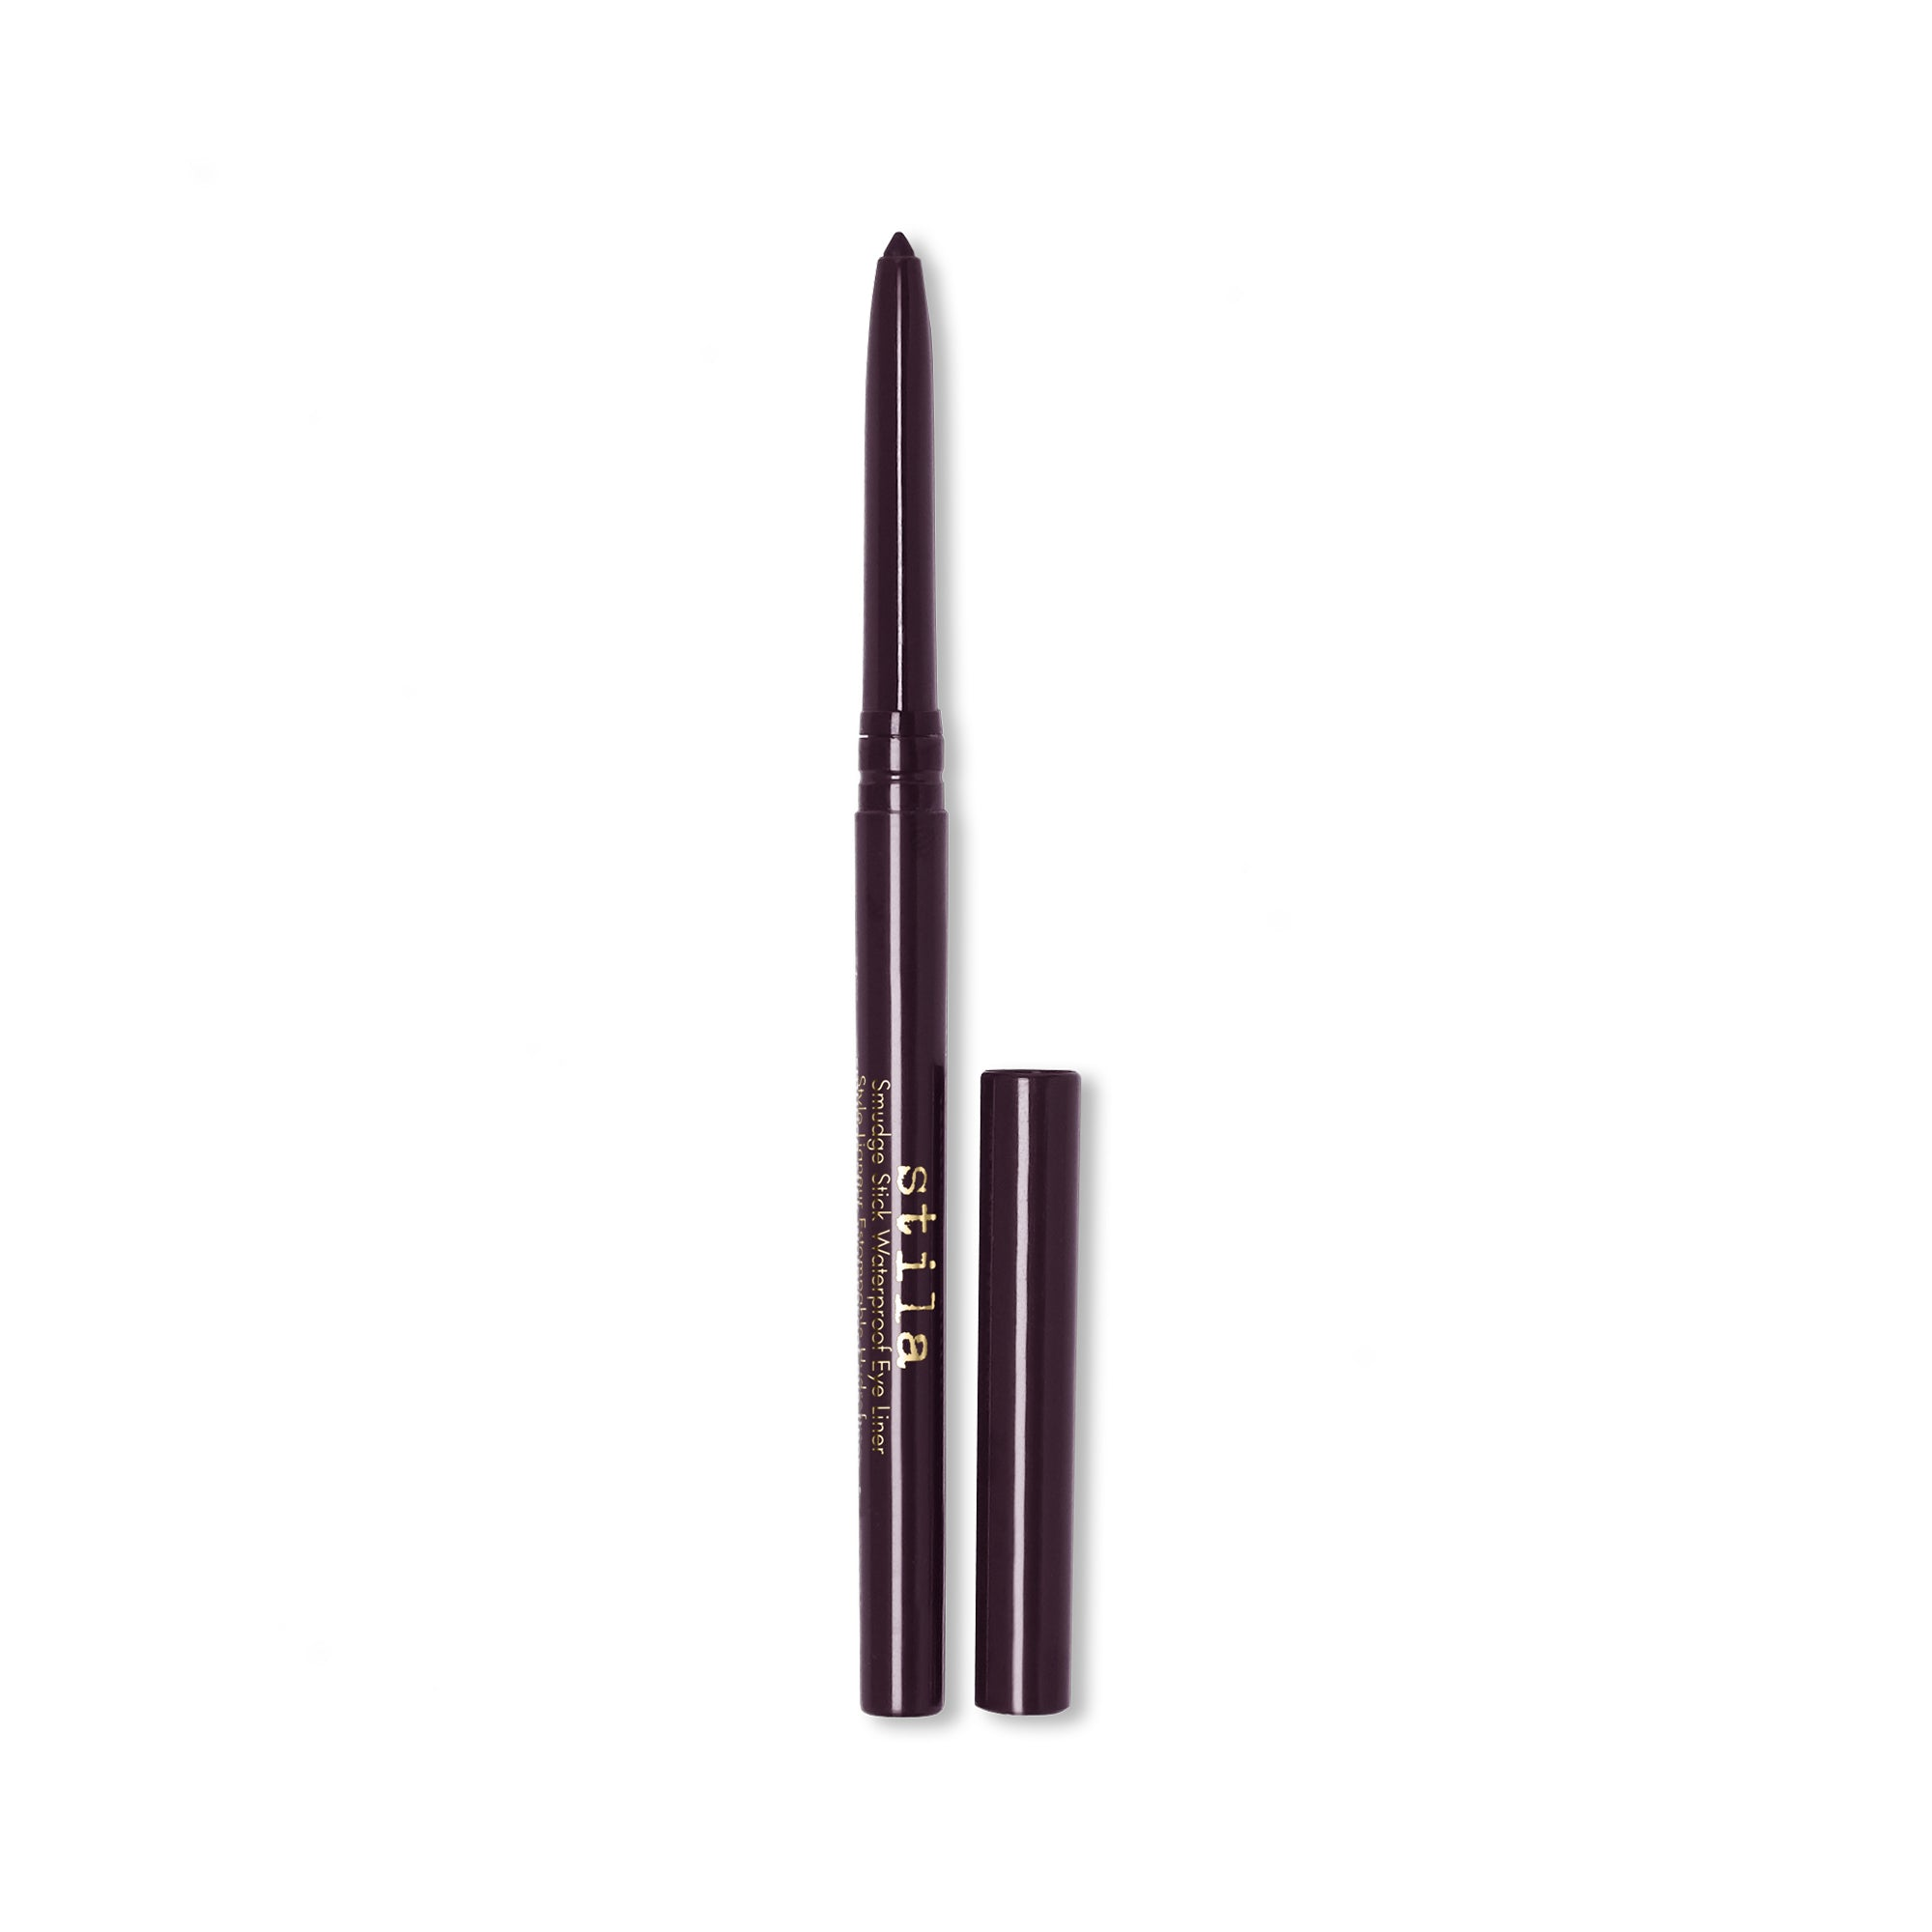 Stay All Day® Waterproof Liquid Eye Liner - Black Amethyst